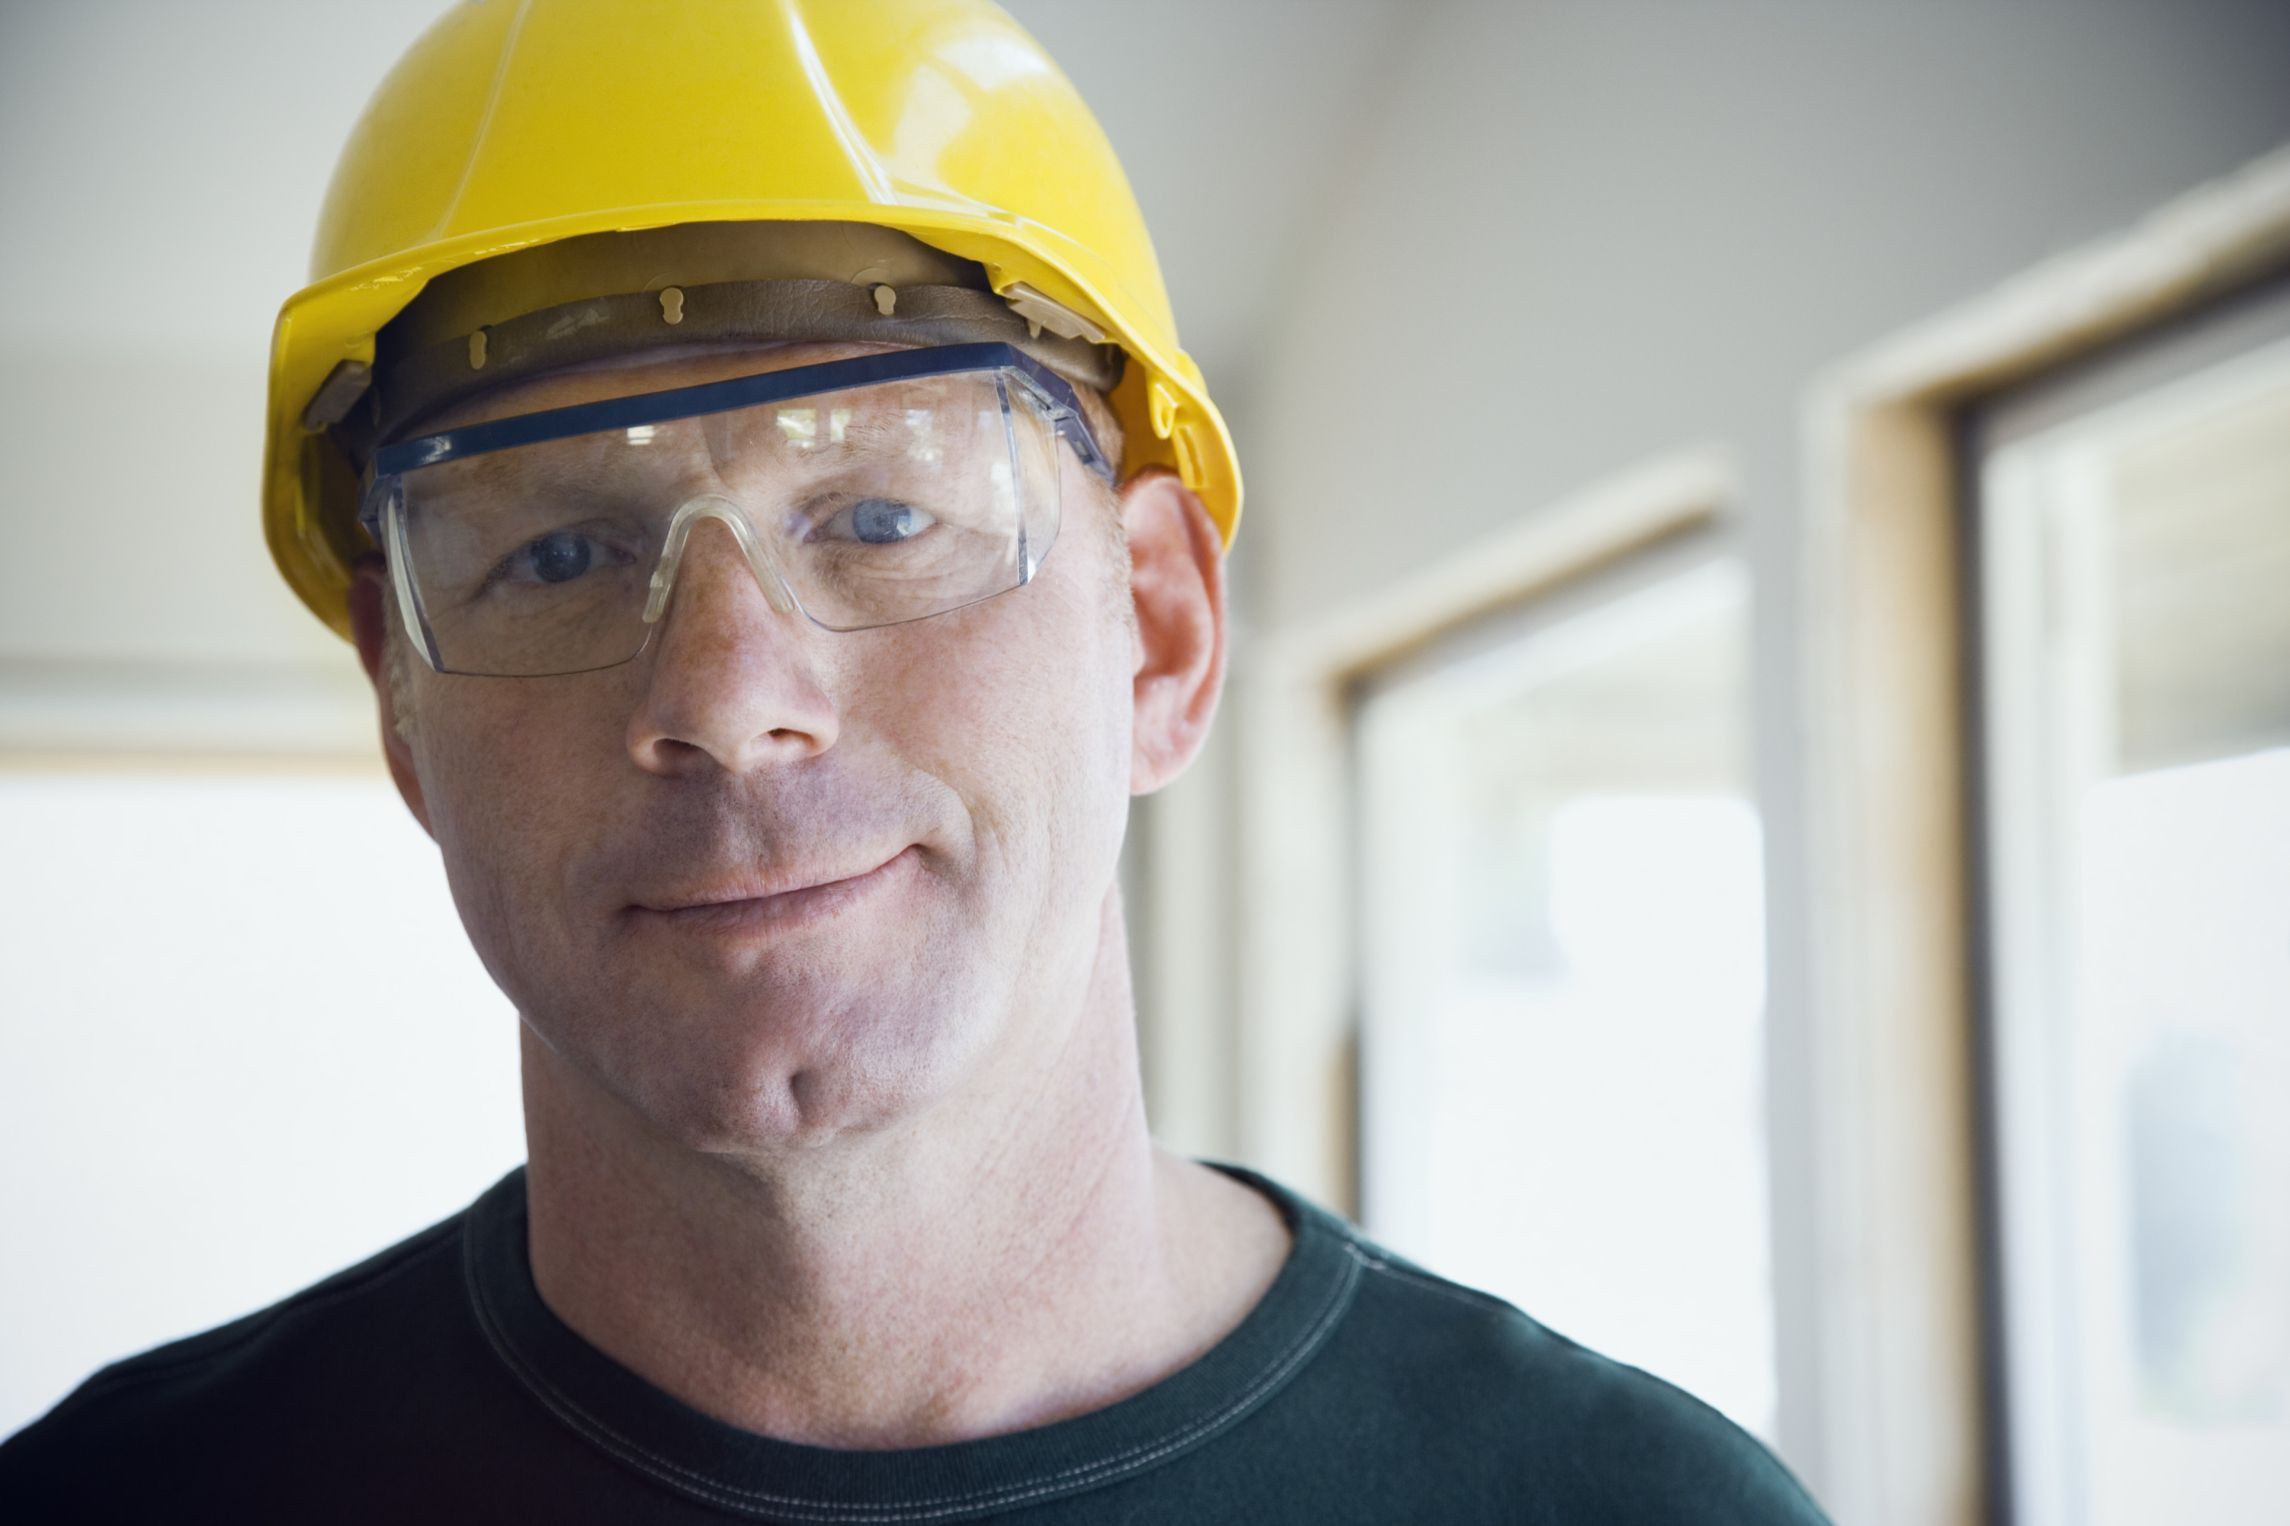 Protect your eyes when you work. Eyesafety checklist from